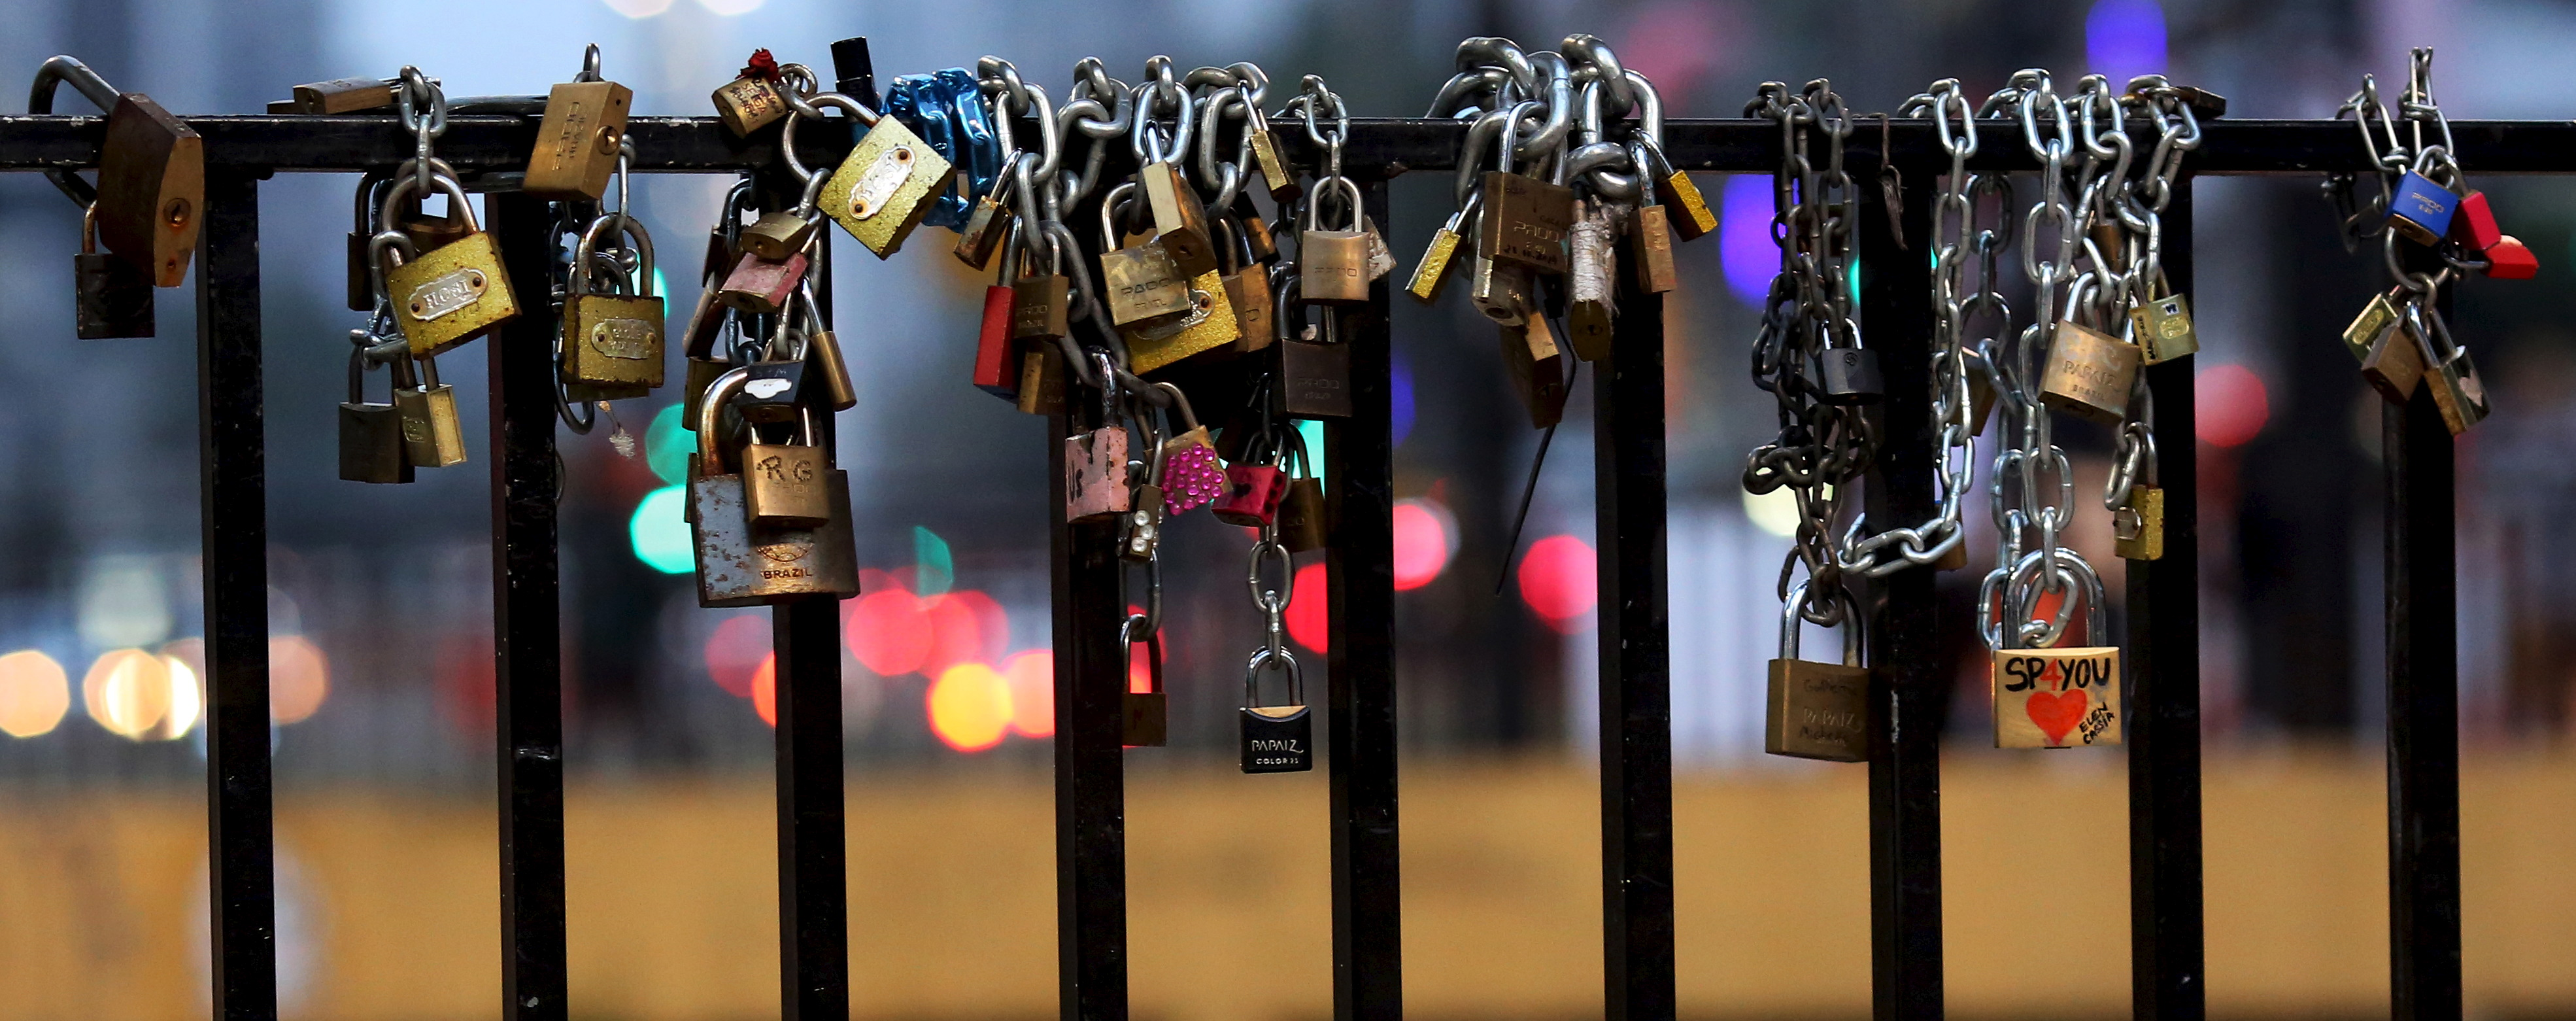 """""""Love locks"""" are seen attached to an iron grill in a viaduct at Paulista Avenue in Sao Paulo's financial centre, June 2, 2015.  REUTERS/Paulo Whitaker - RTR4YKFY"""